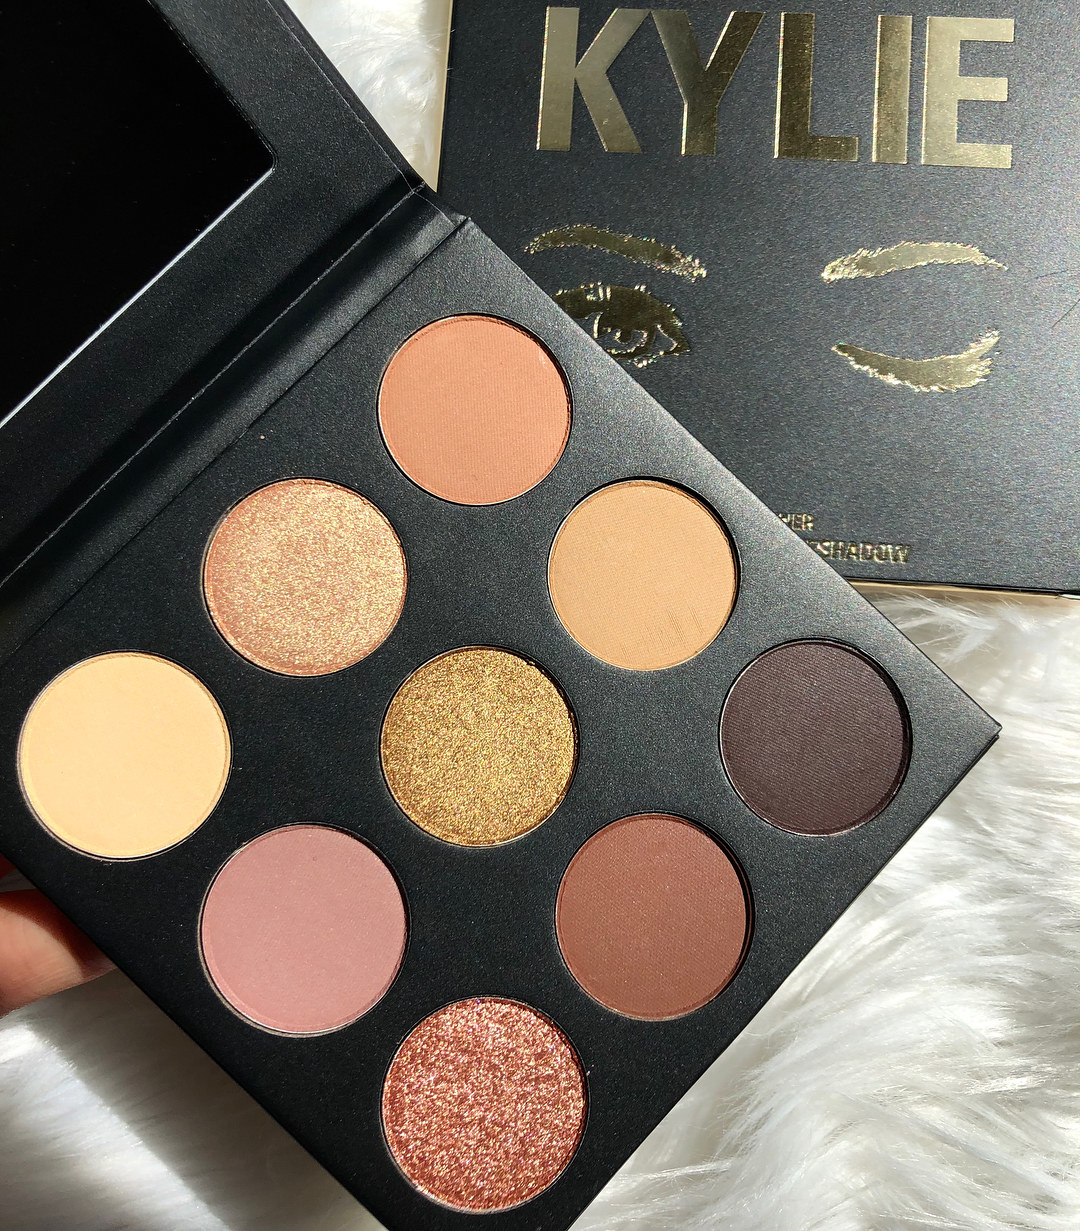 a palette with an array of yellow, pink, and shimmery eyeshadow colors